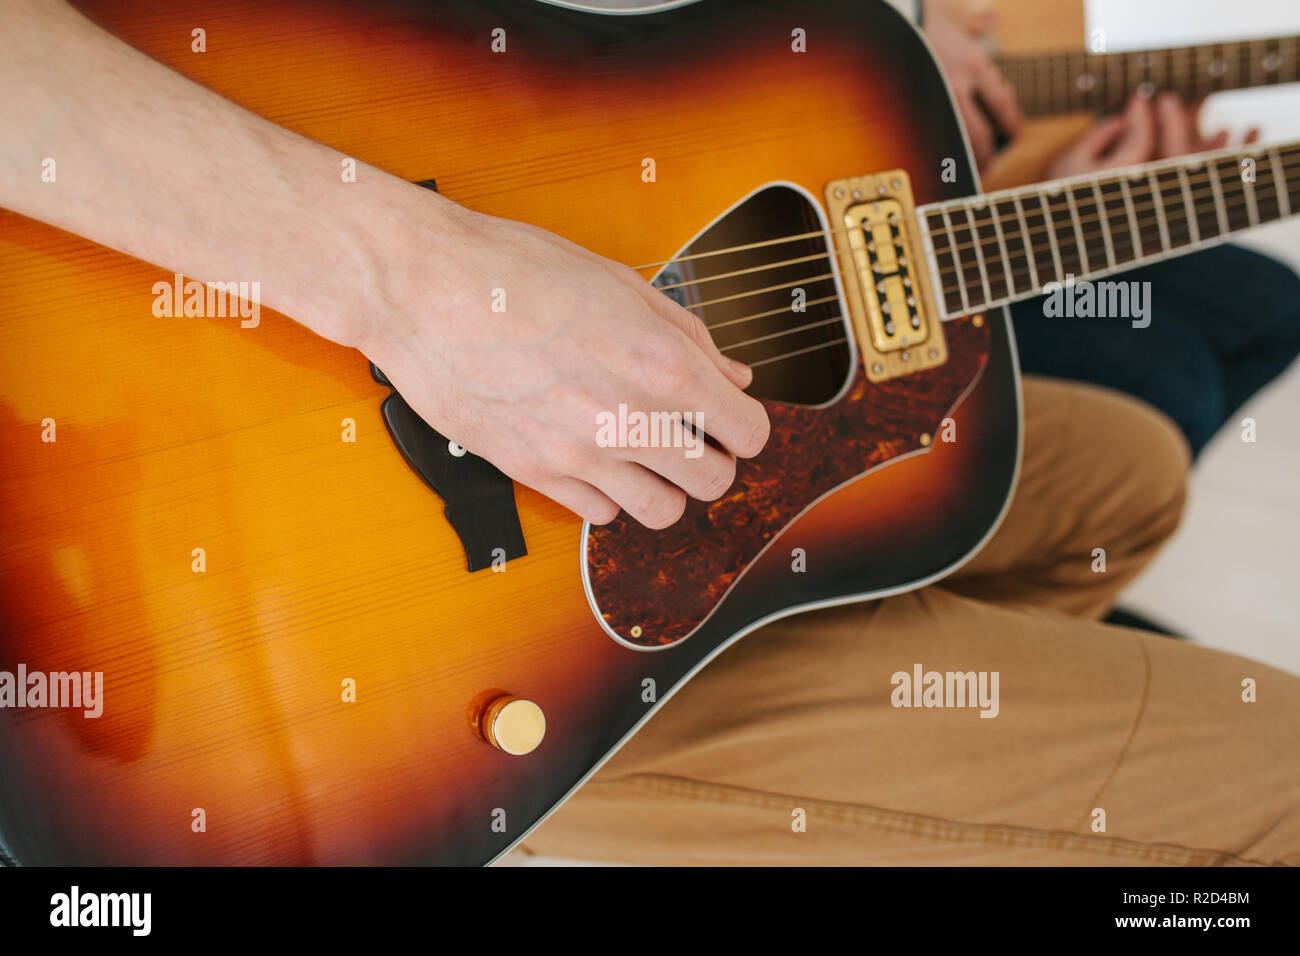 Learning to play the guitar. Interesting hobby or professional occupation of music. Music education or extracurricular activities or pastime - Stock Image